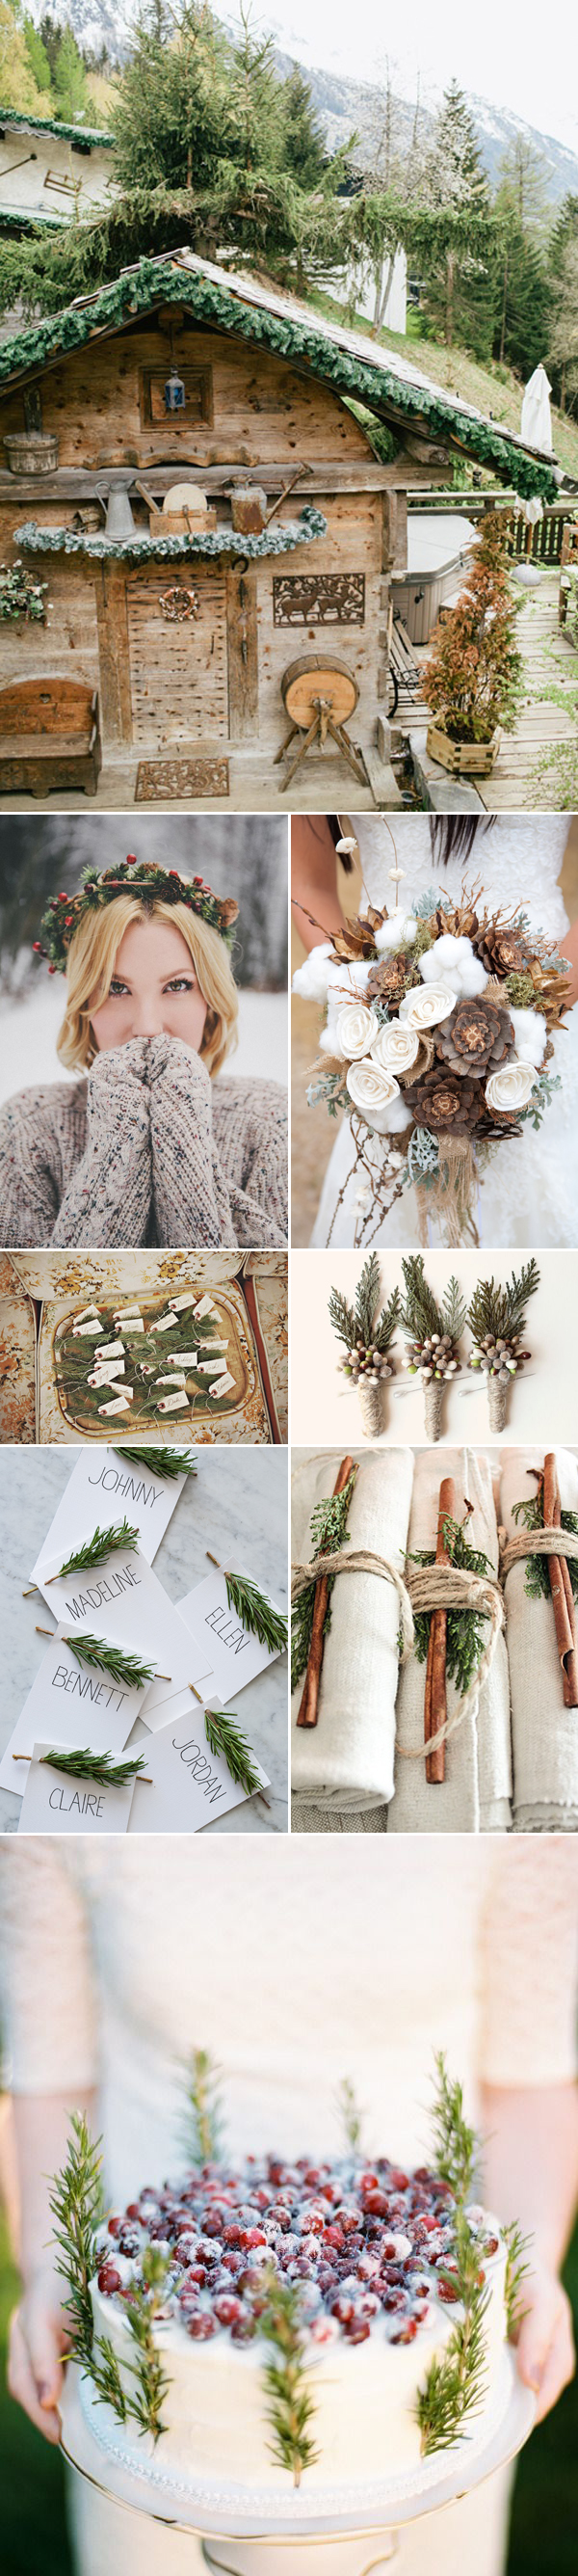 rustic mountain winter wedding inspiration matrimonio rustico invernale inspiration board